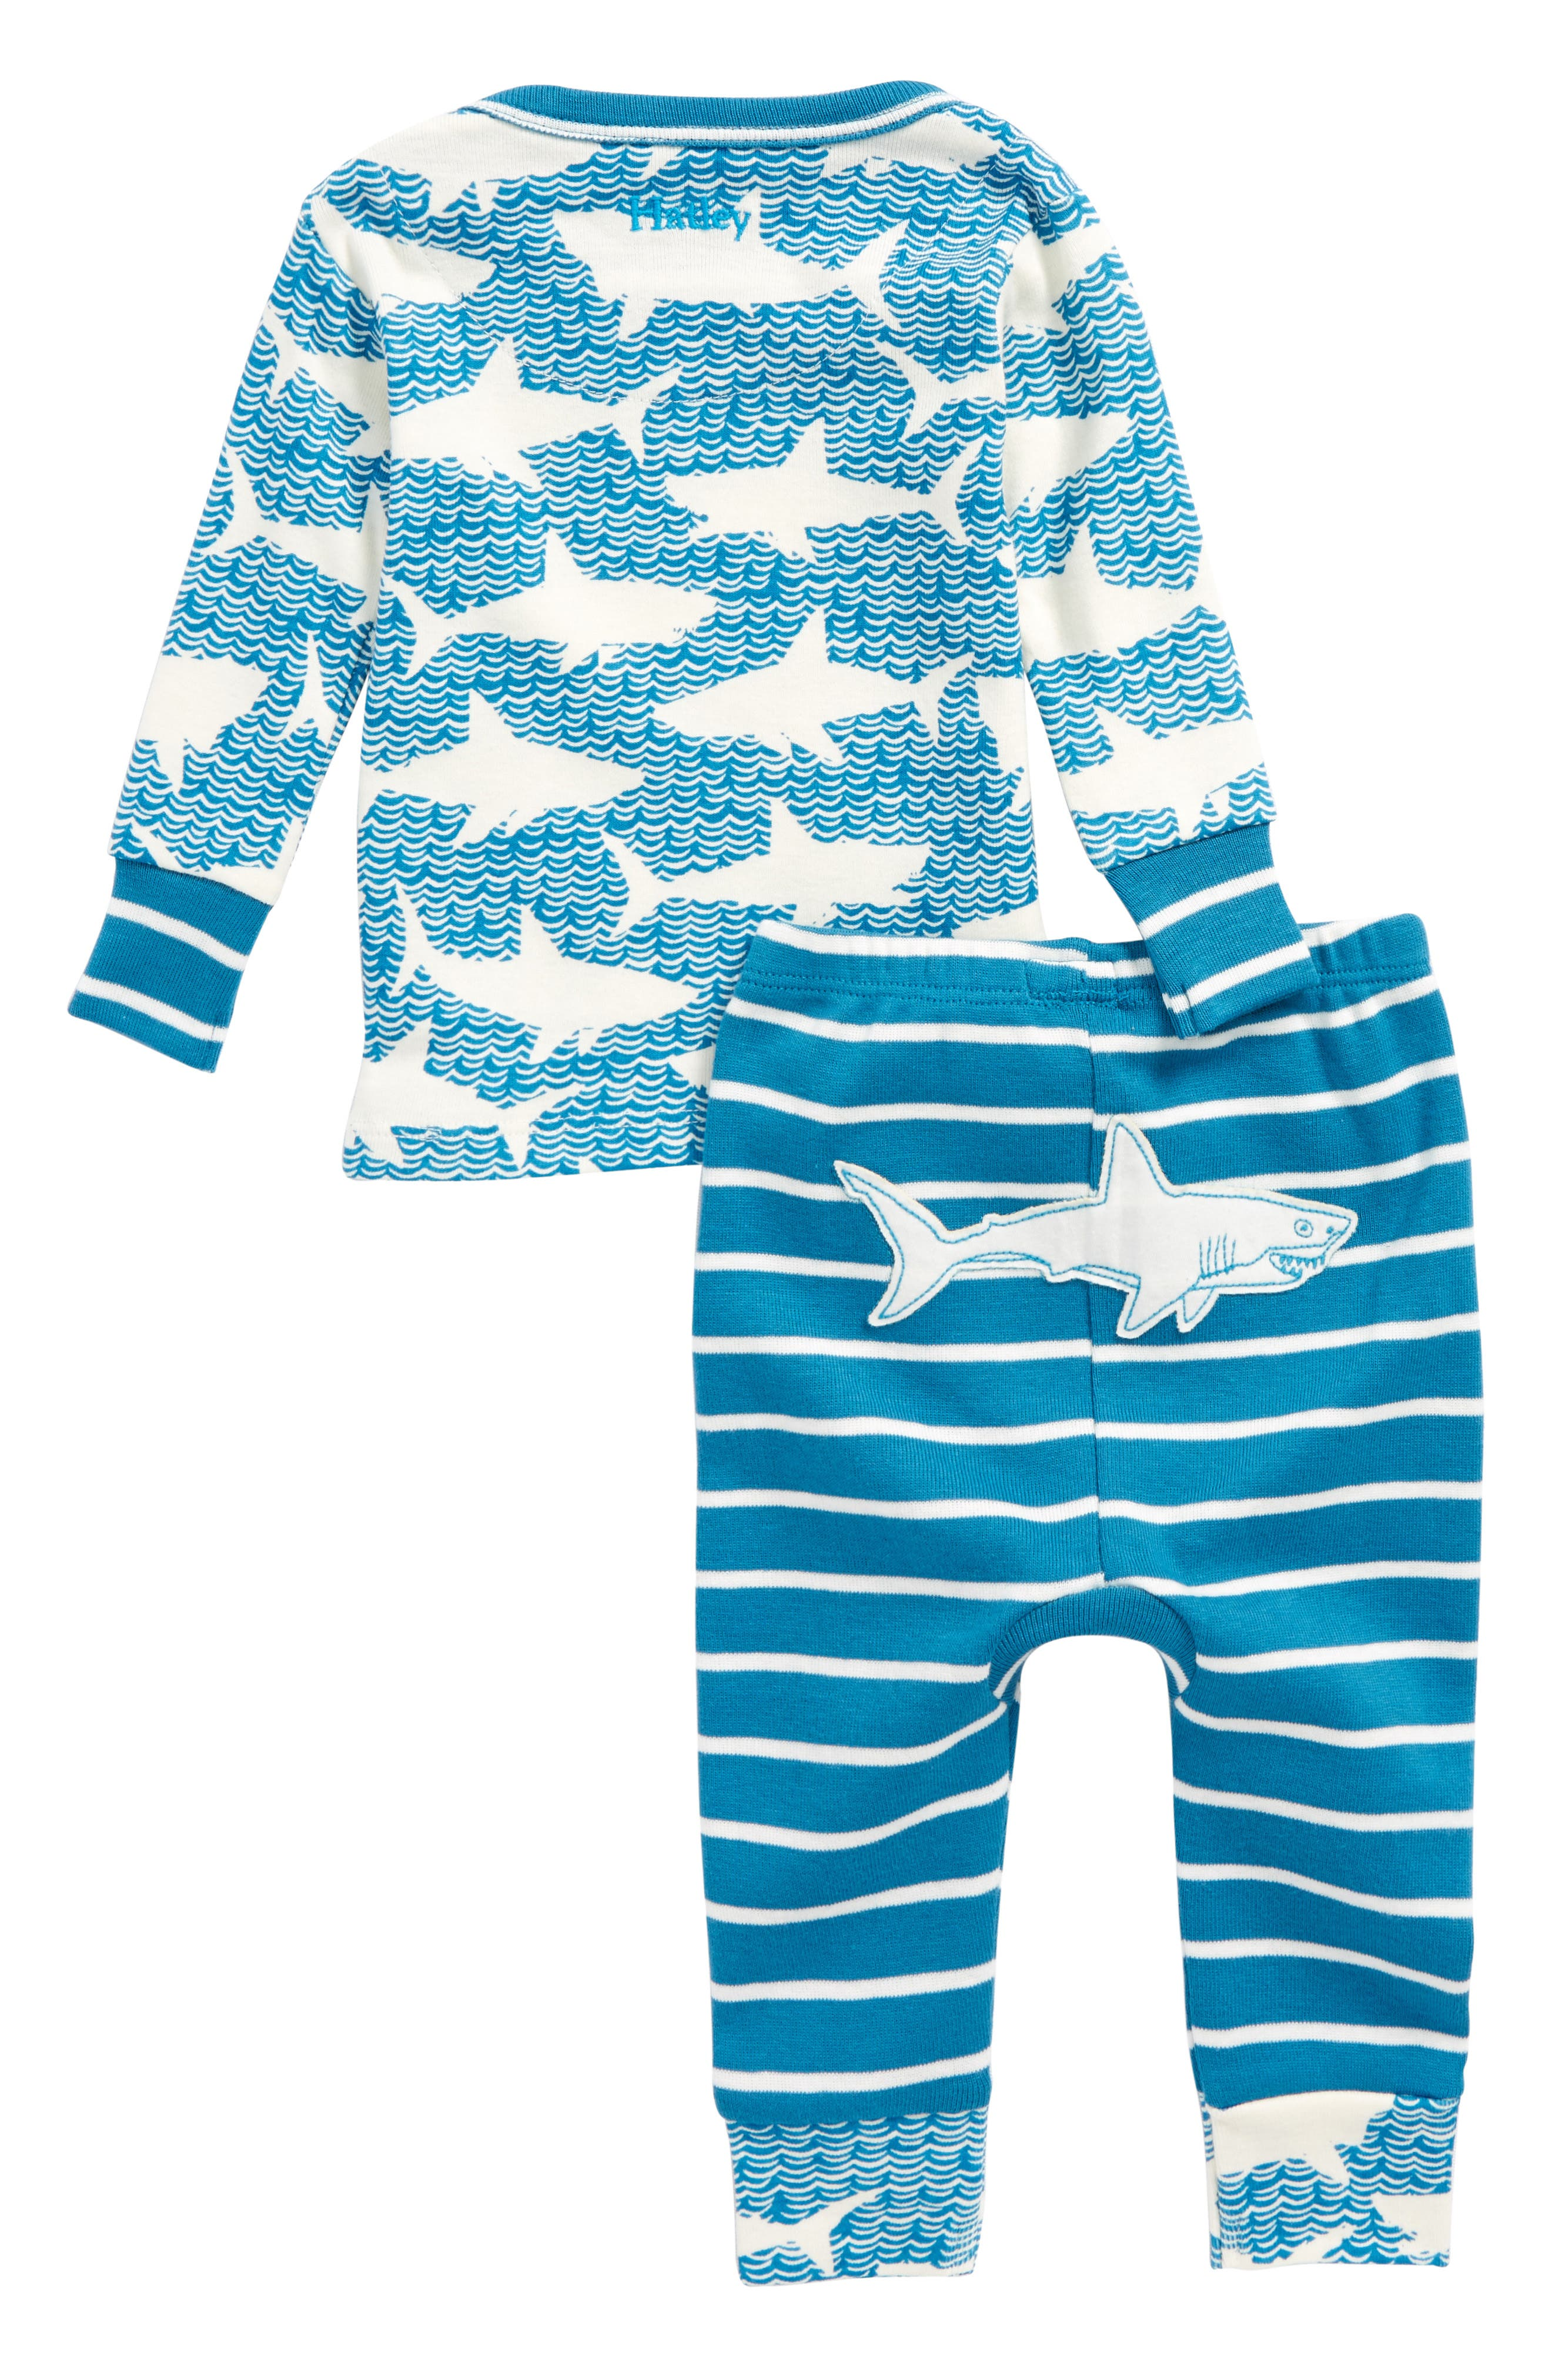 Shark Alley Organic Cotton Fitted Two-Piece Pajamas,                             Alternate thumbnail 2, color,